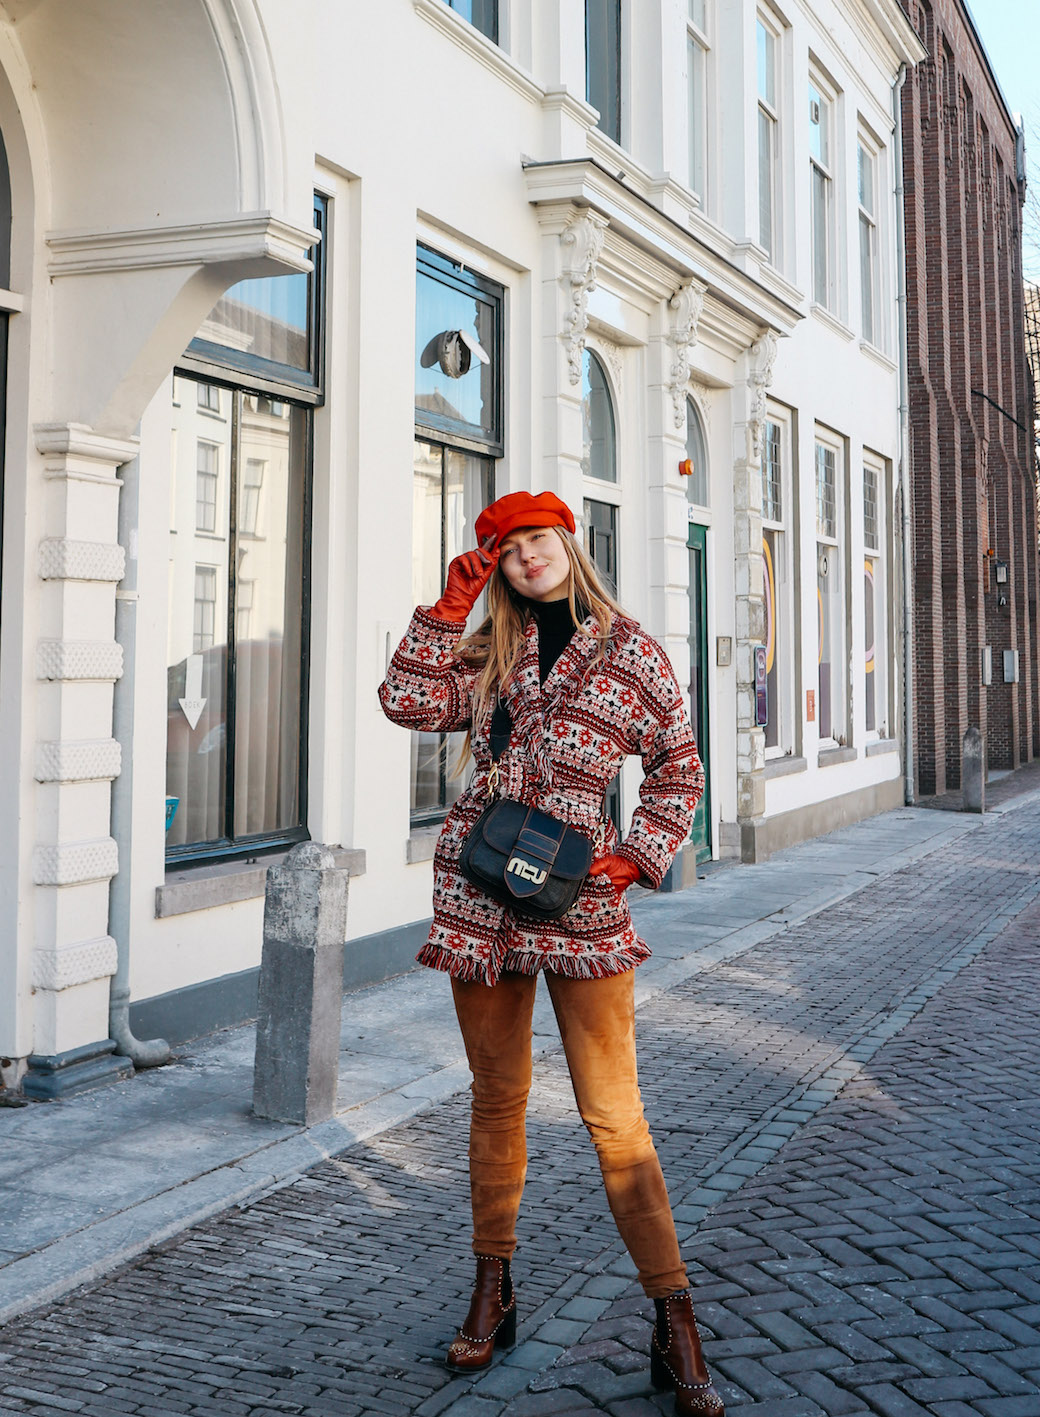 floortjeloves, zara, arma, arma leather, Prada, Prada boots, miu miu, miu miu bag, red cap, wolford, confident, tricks to be confident in any situation, tricks, tips, tricks to be confident, tips to be confident, networking